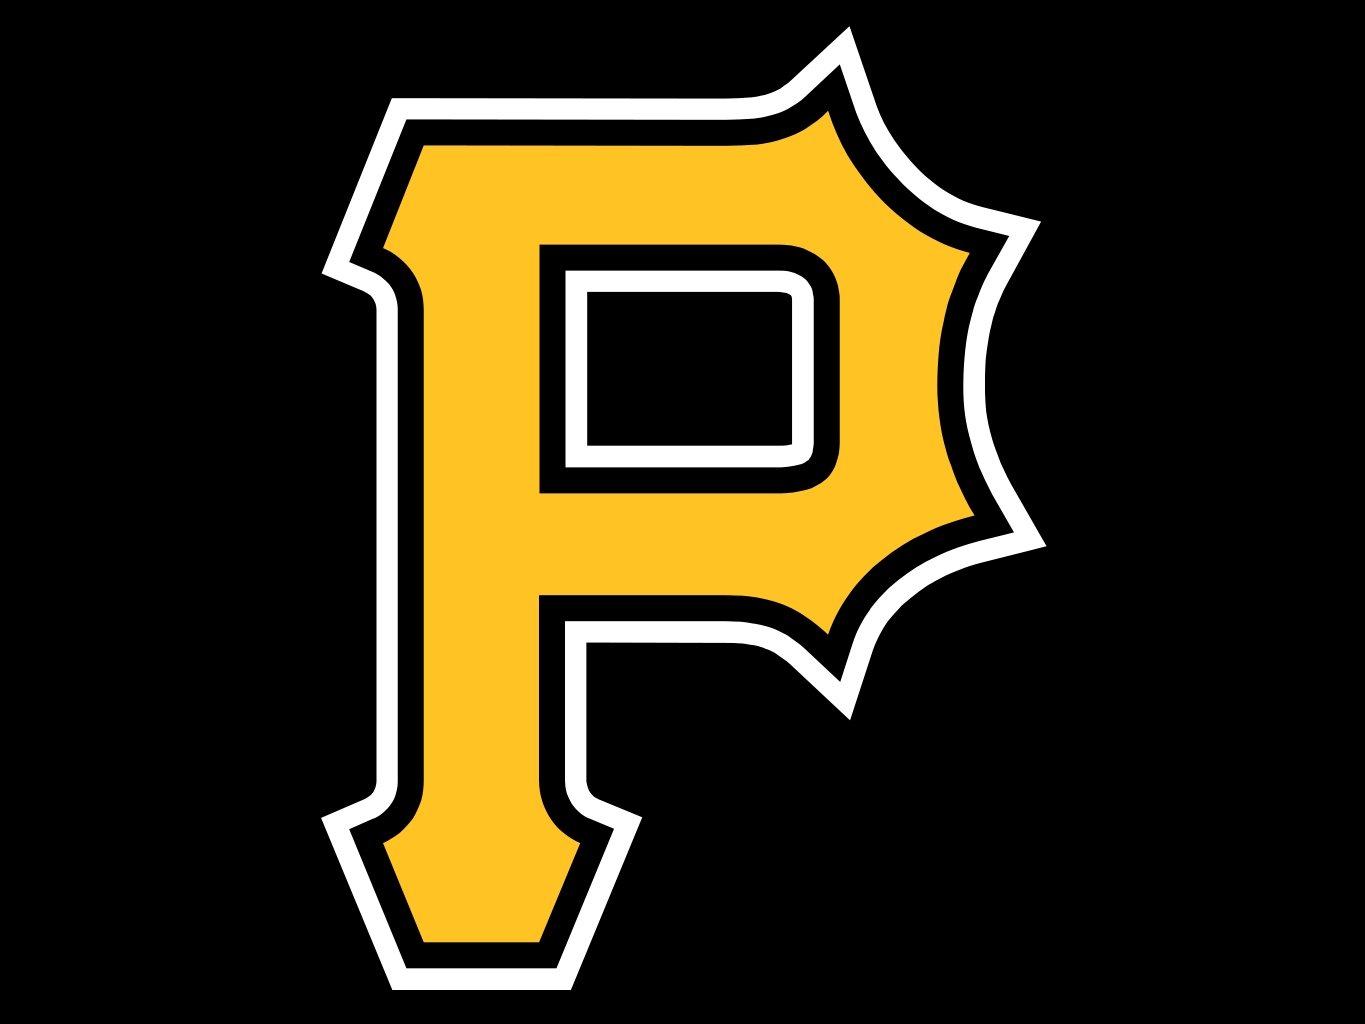 7 Pittsburgh Pirates Logo Vector Images